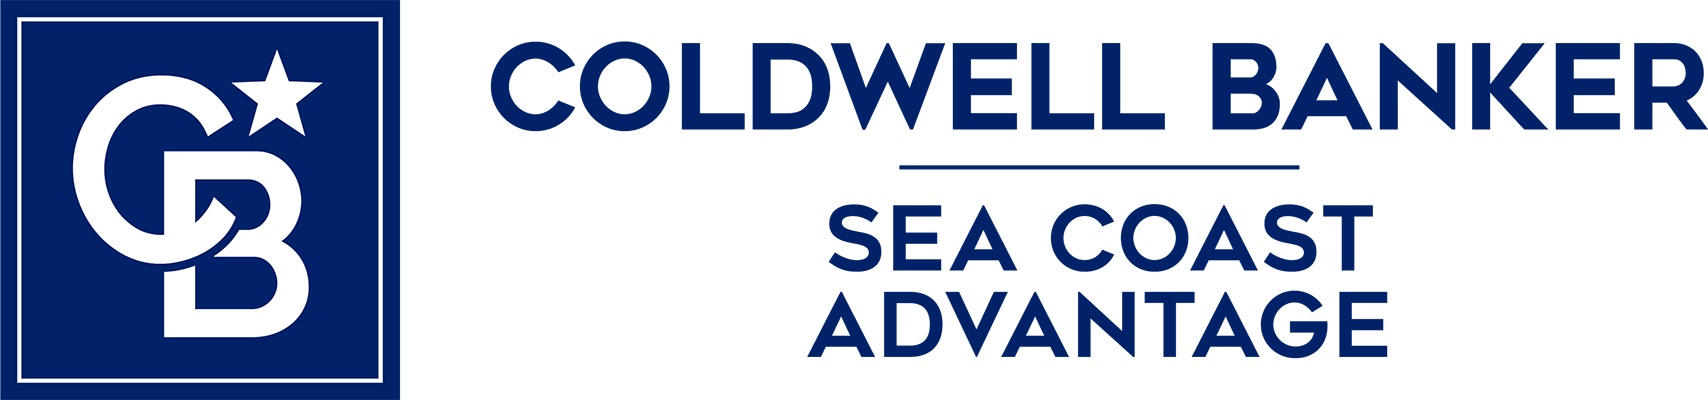 Lisa Faile - Coldwell Banker Sea Coast Advantage Realty